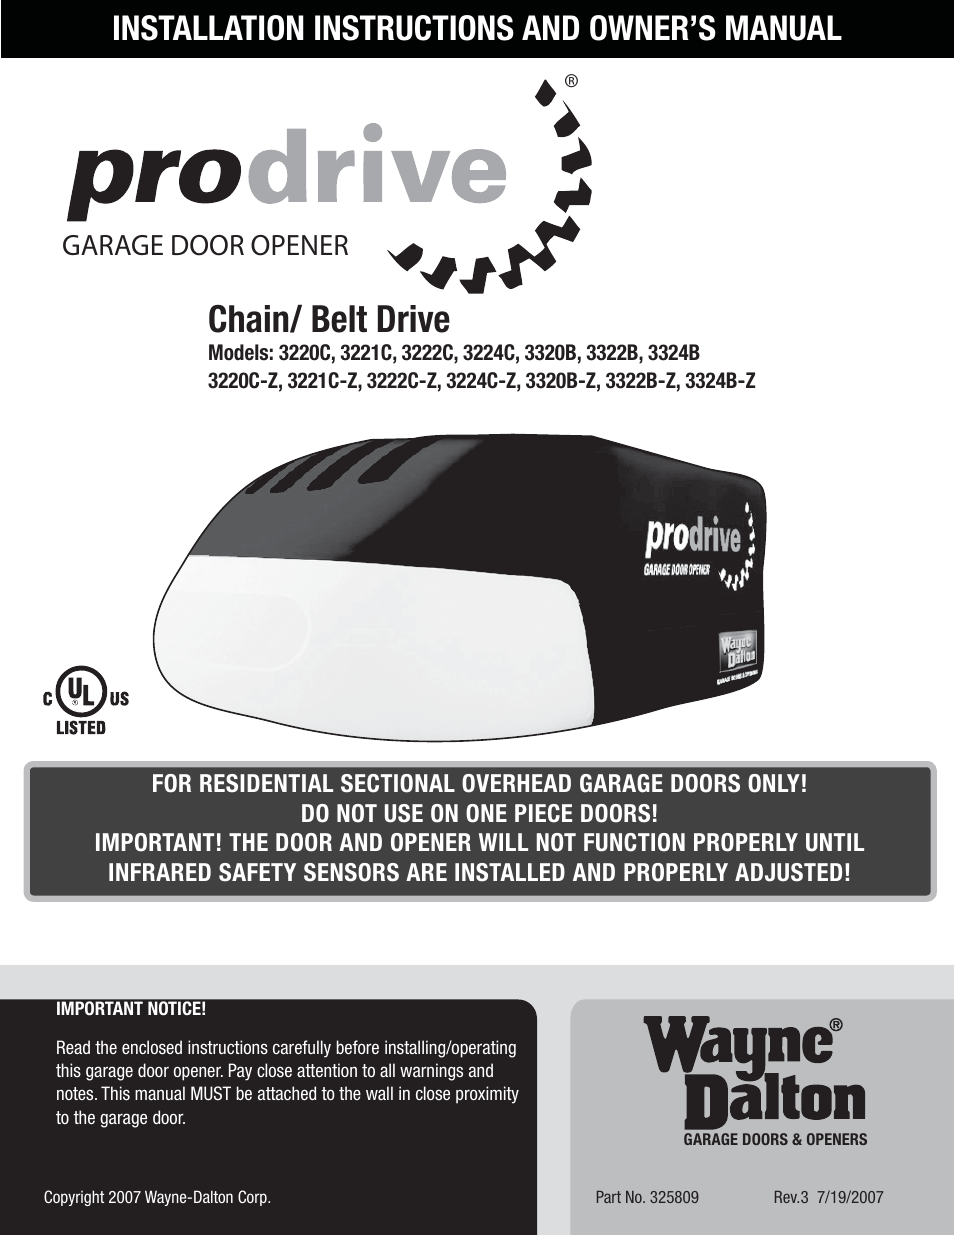 Wayne-Dalton PRODRIVE 3222C-Z User Manual | 48 pages | Also for ...